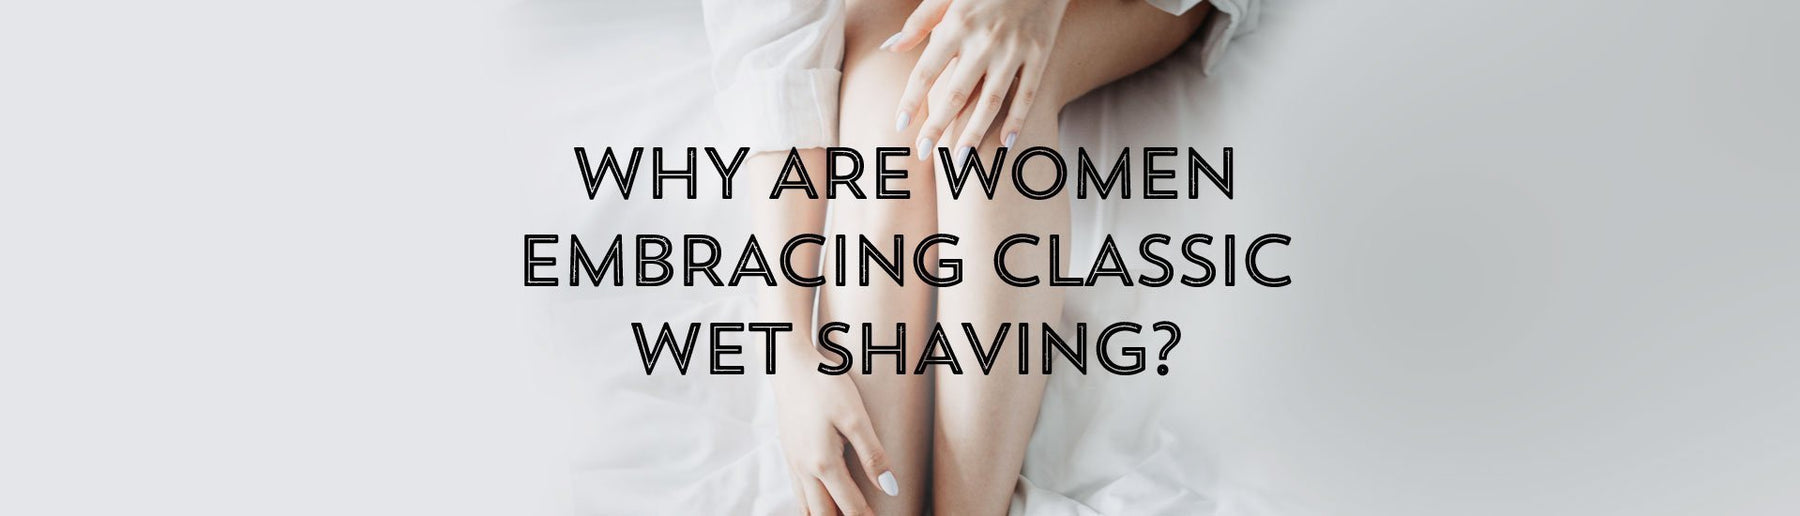 Why Are Women Embracing Classic Wet Shaving?-West Coast Shaving